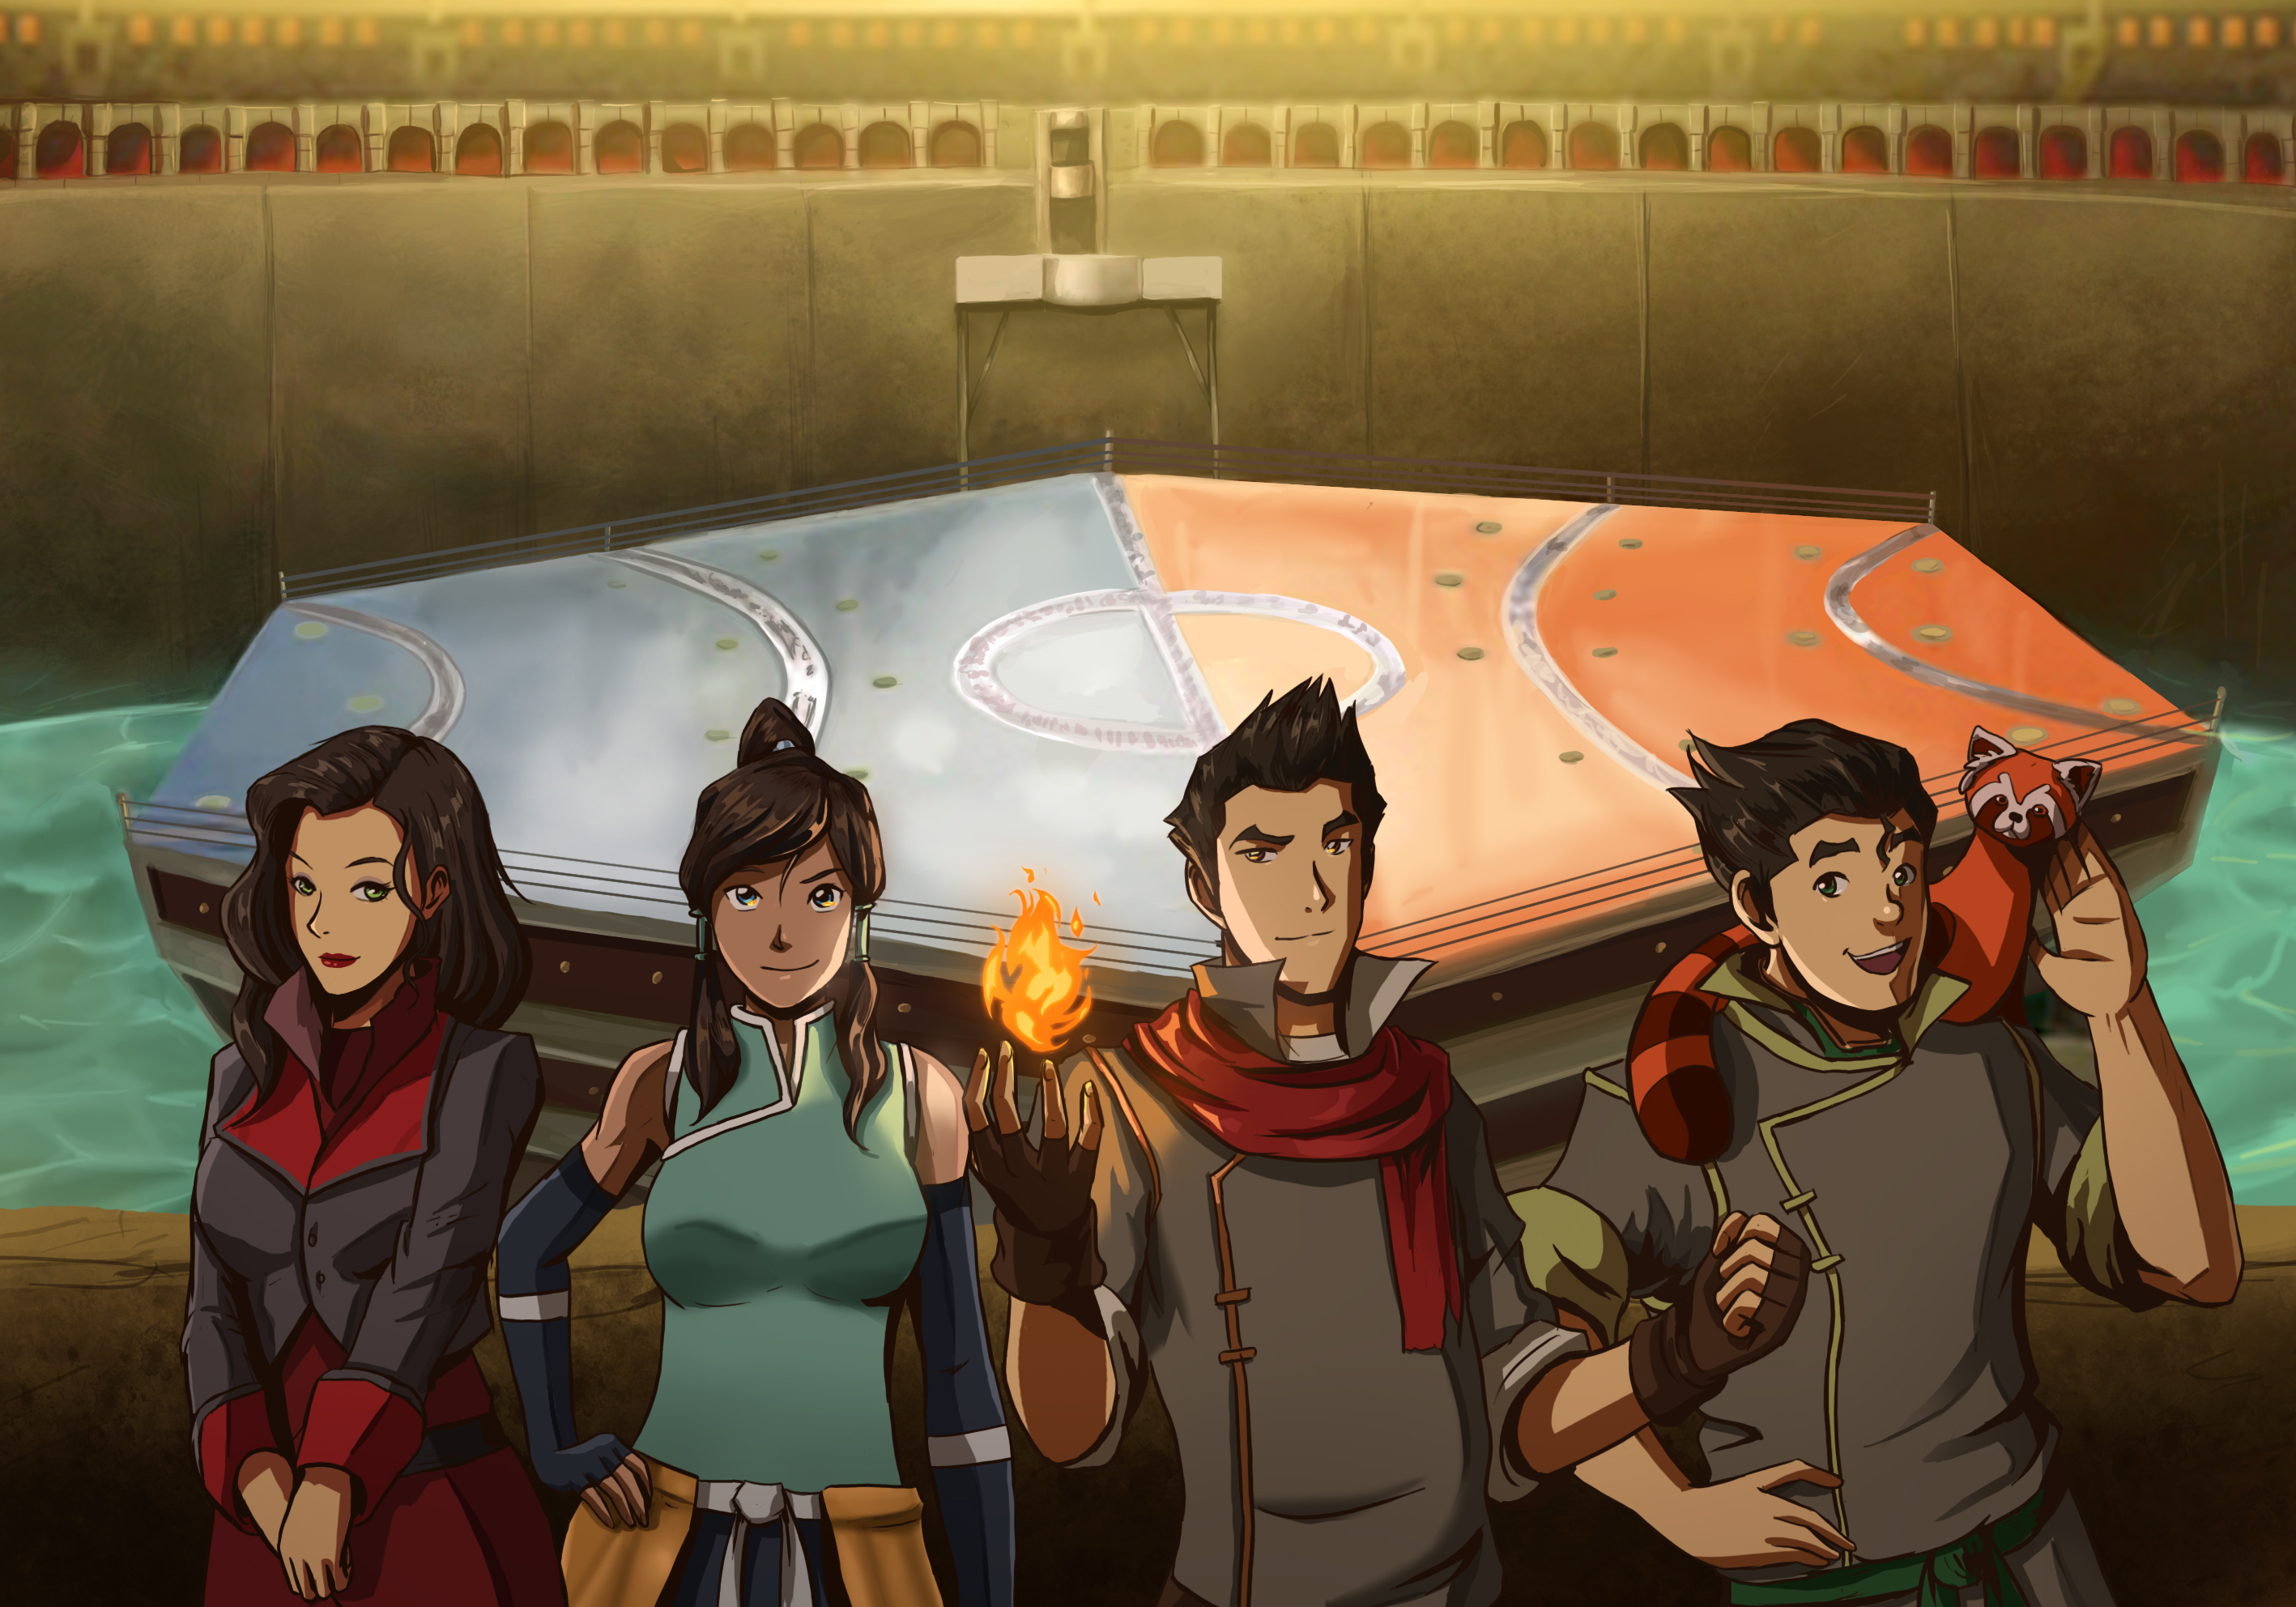 Avatar legend of korra artwork!